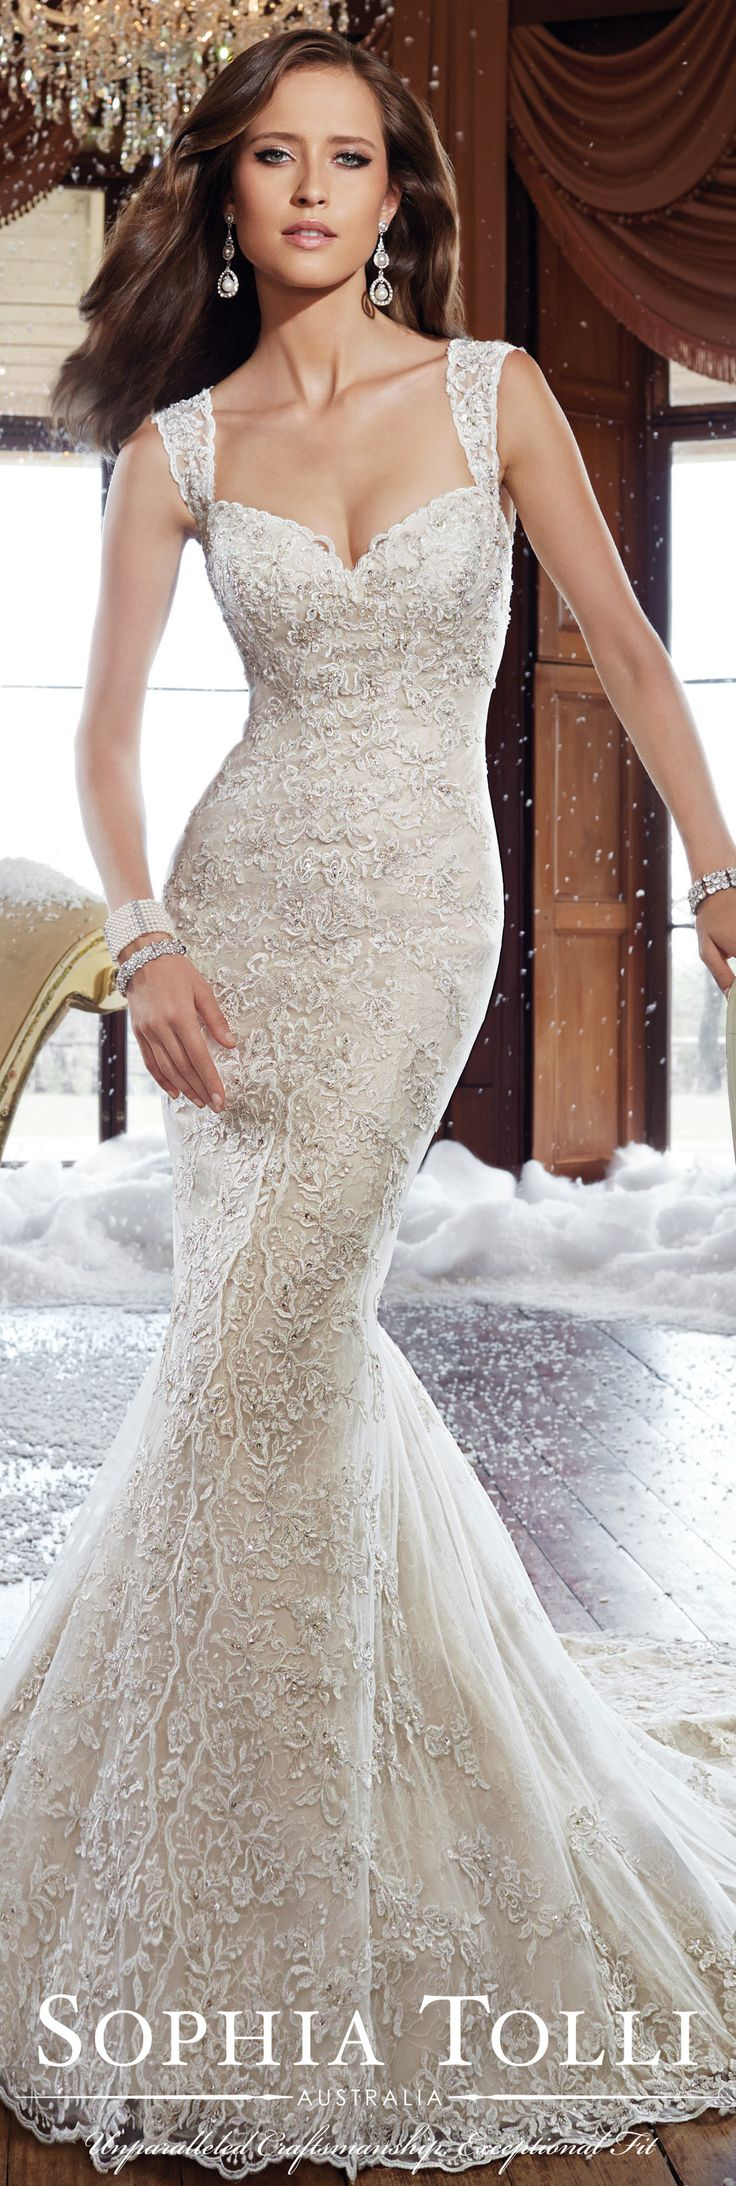 Lace off shoulder wedding dress august 2019  best Wedding ideas u stuff for when that day comes images by